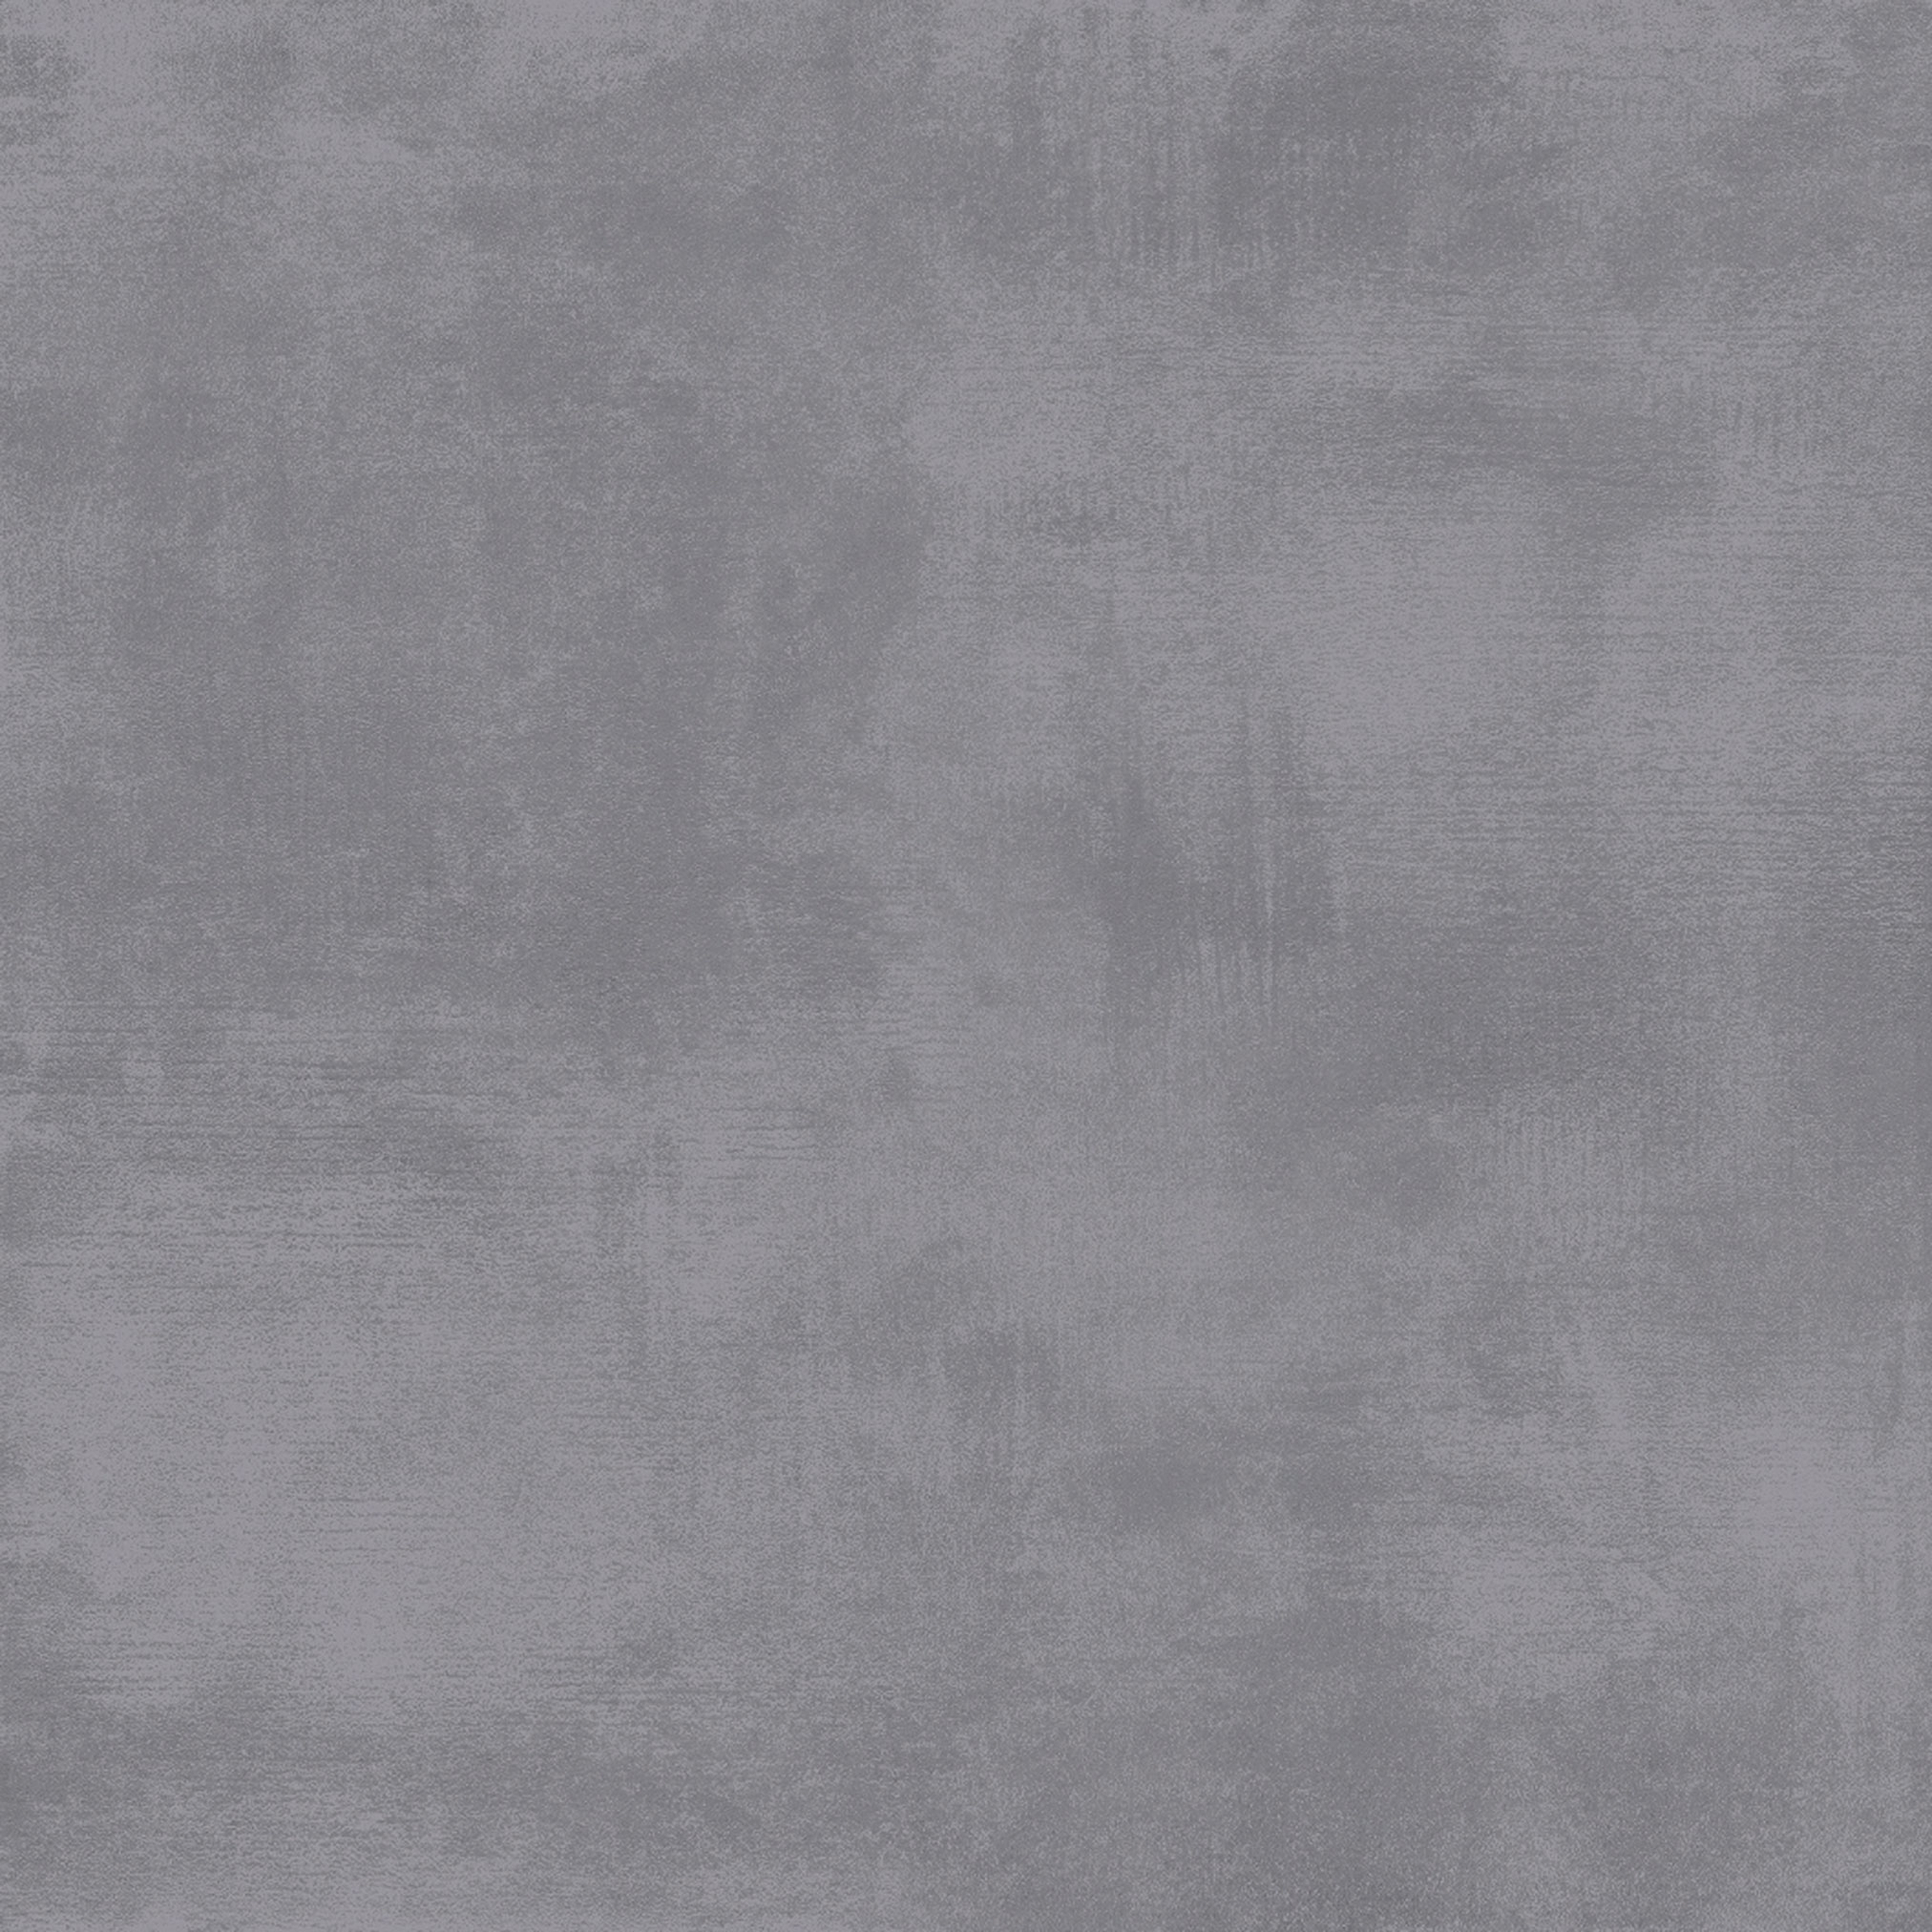 CEMENTO Gris 60x60, 45x45 and 30x60